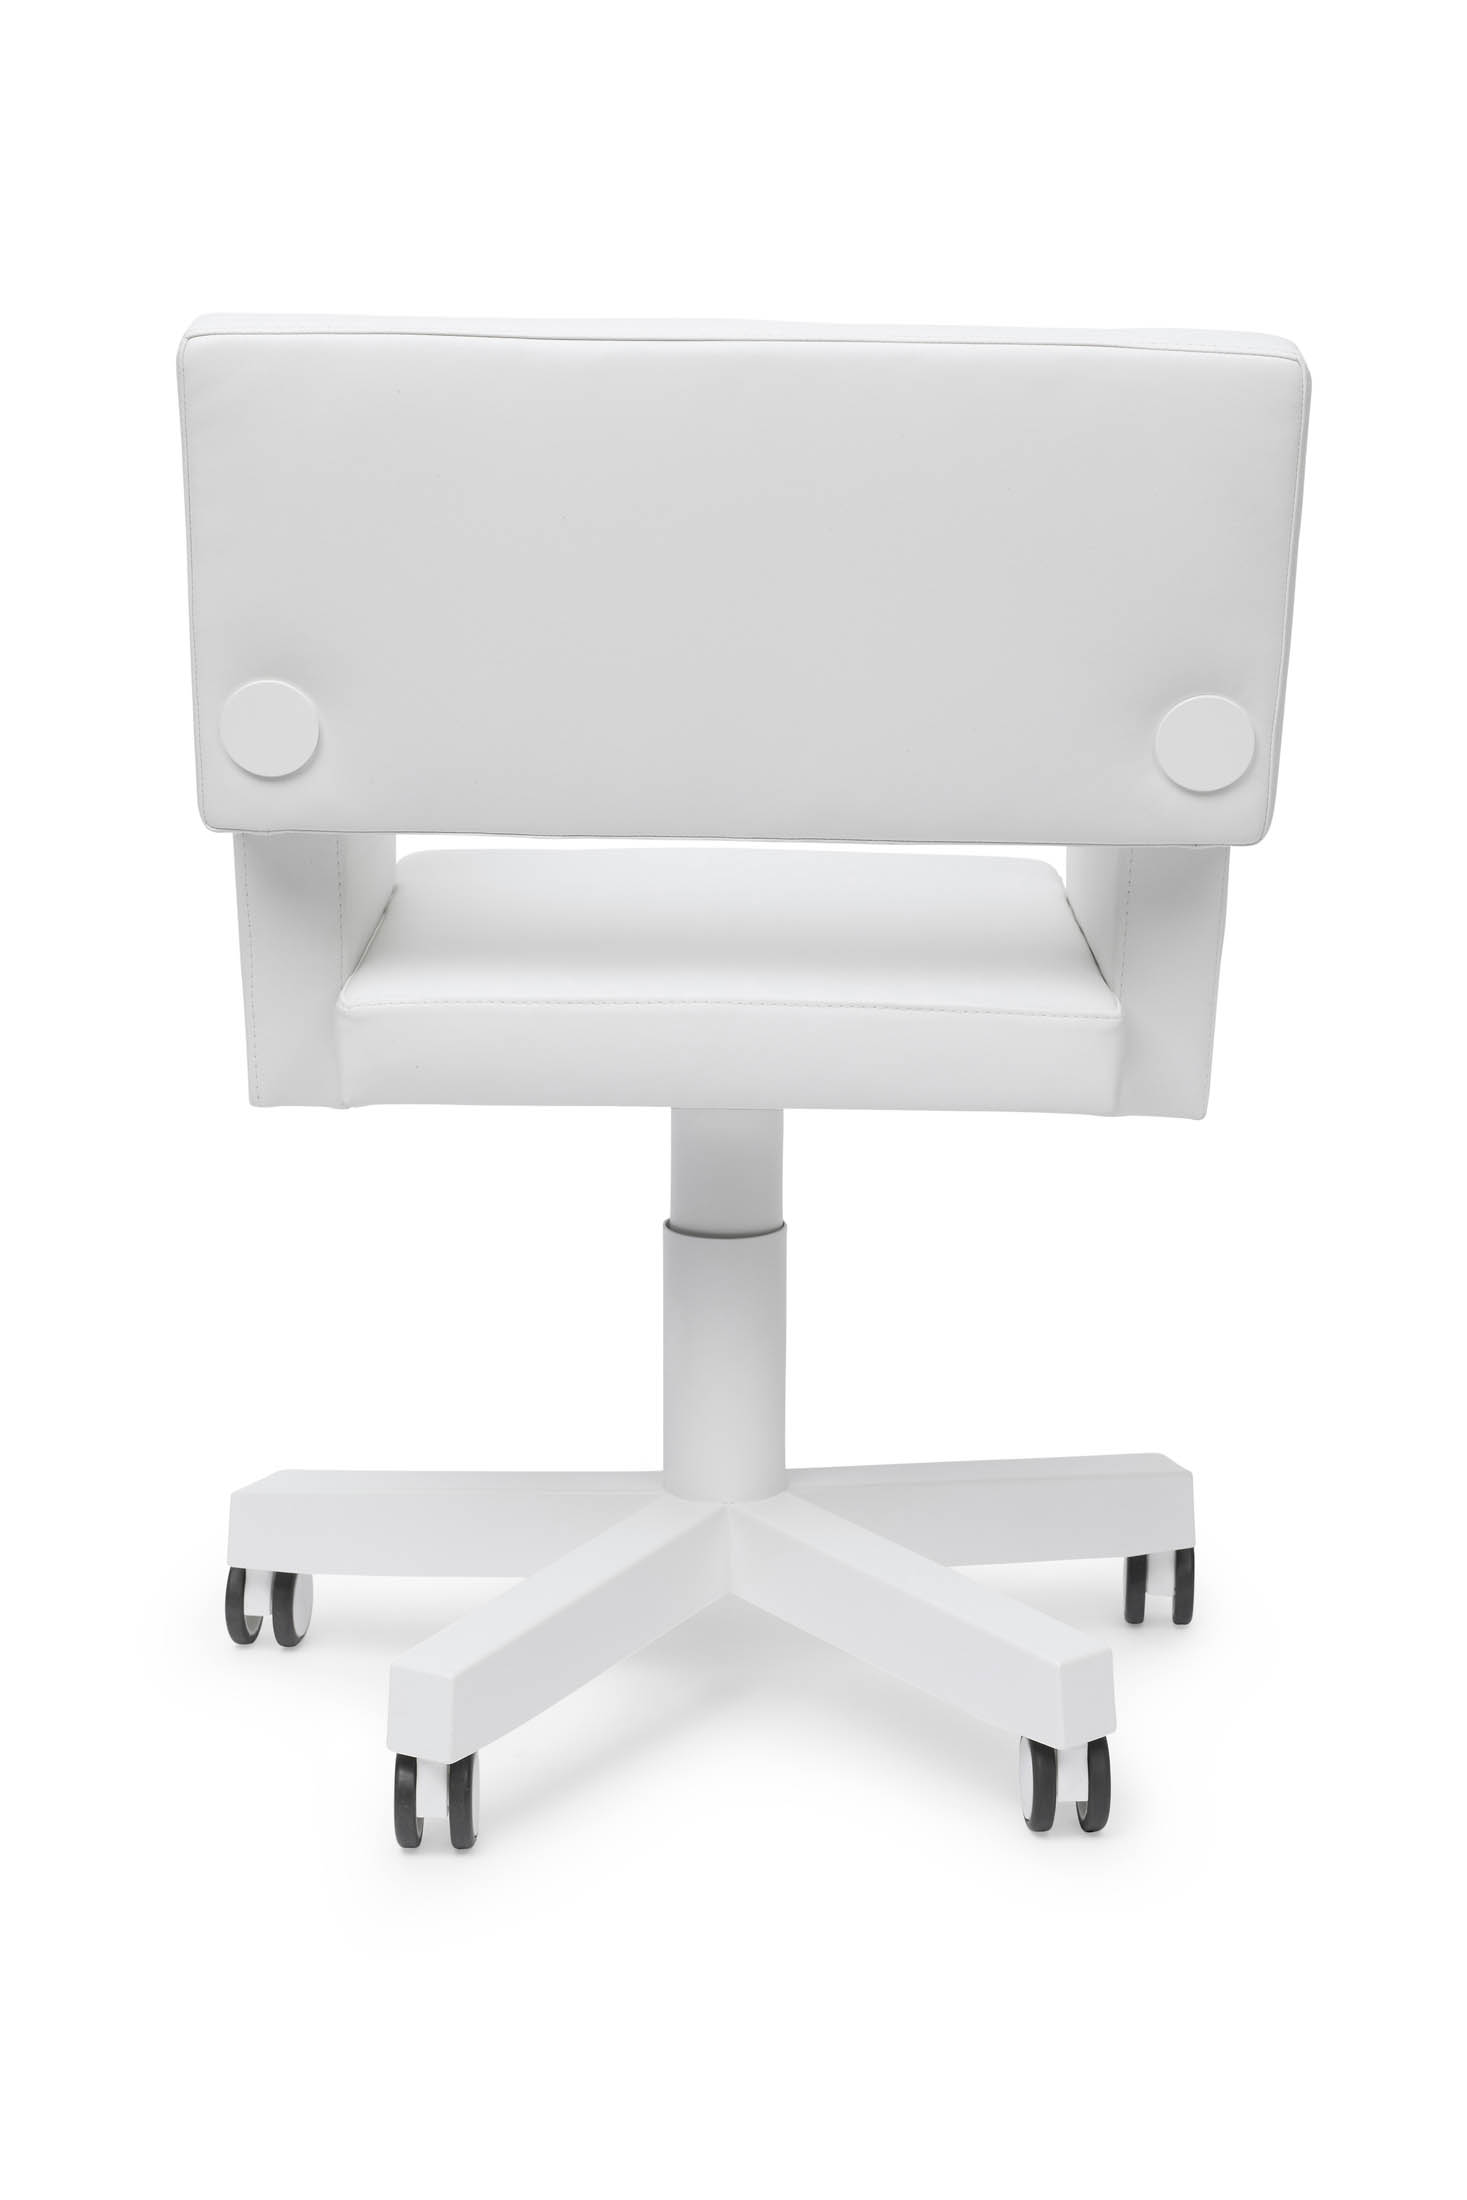 connect-white-leather-upholstered-back.jpg